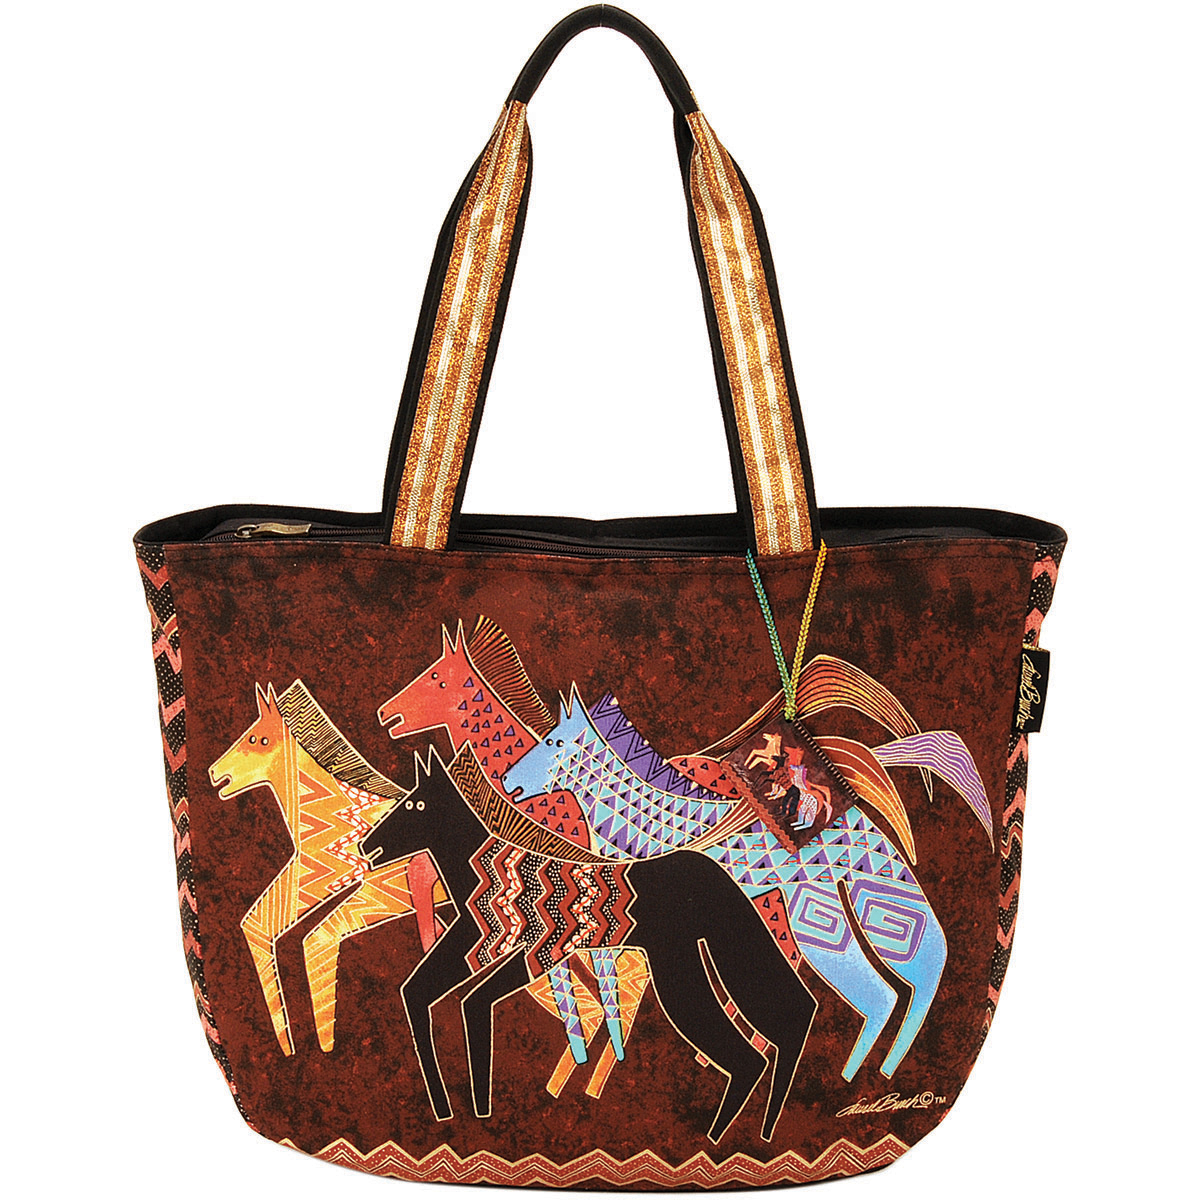 Laurel Burch Shoulder Tote Zipper Top 23.5\u0022x5.5\u0022x15.25\u0022-Native Horses